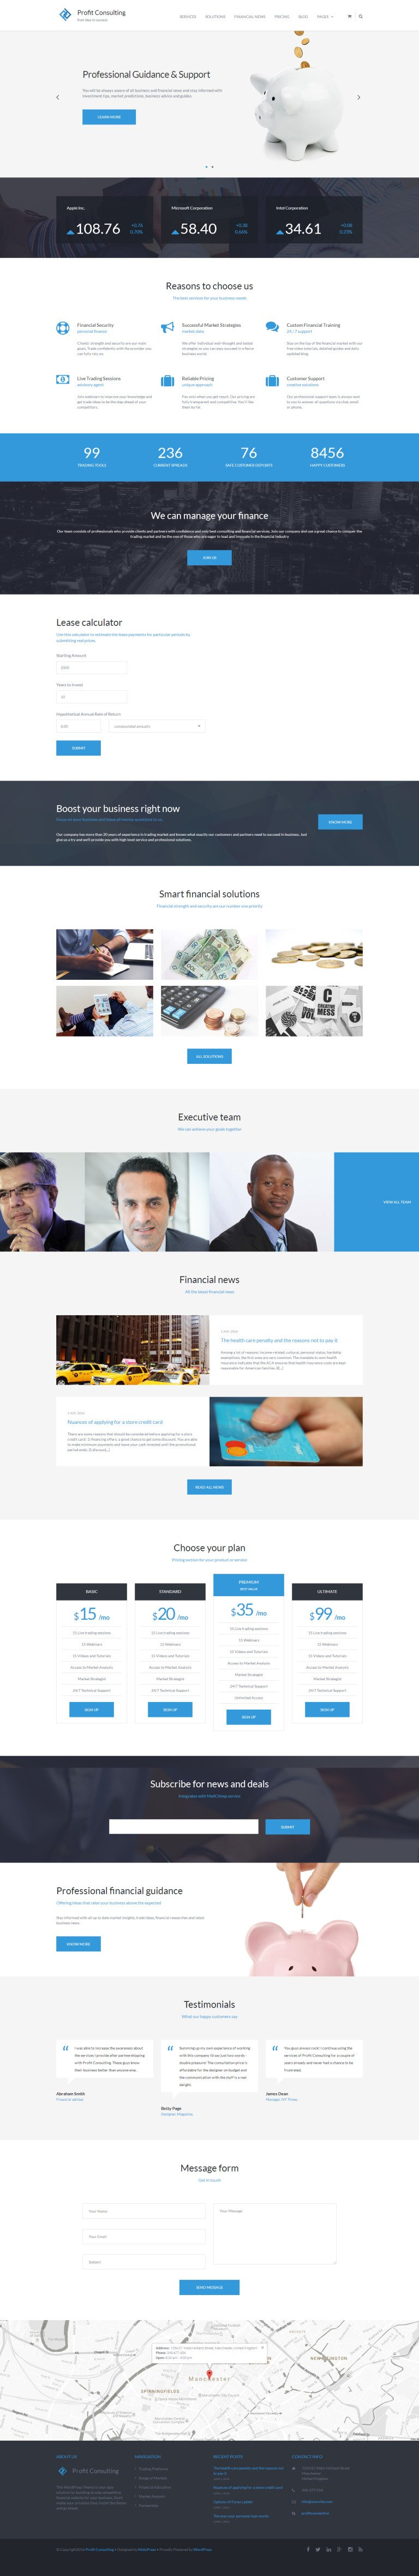 Profit Consulting - Financial Advisor WordPress Theme New Screenshots BIG